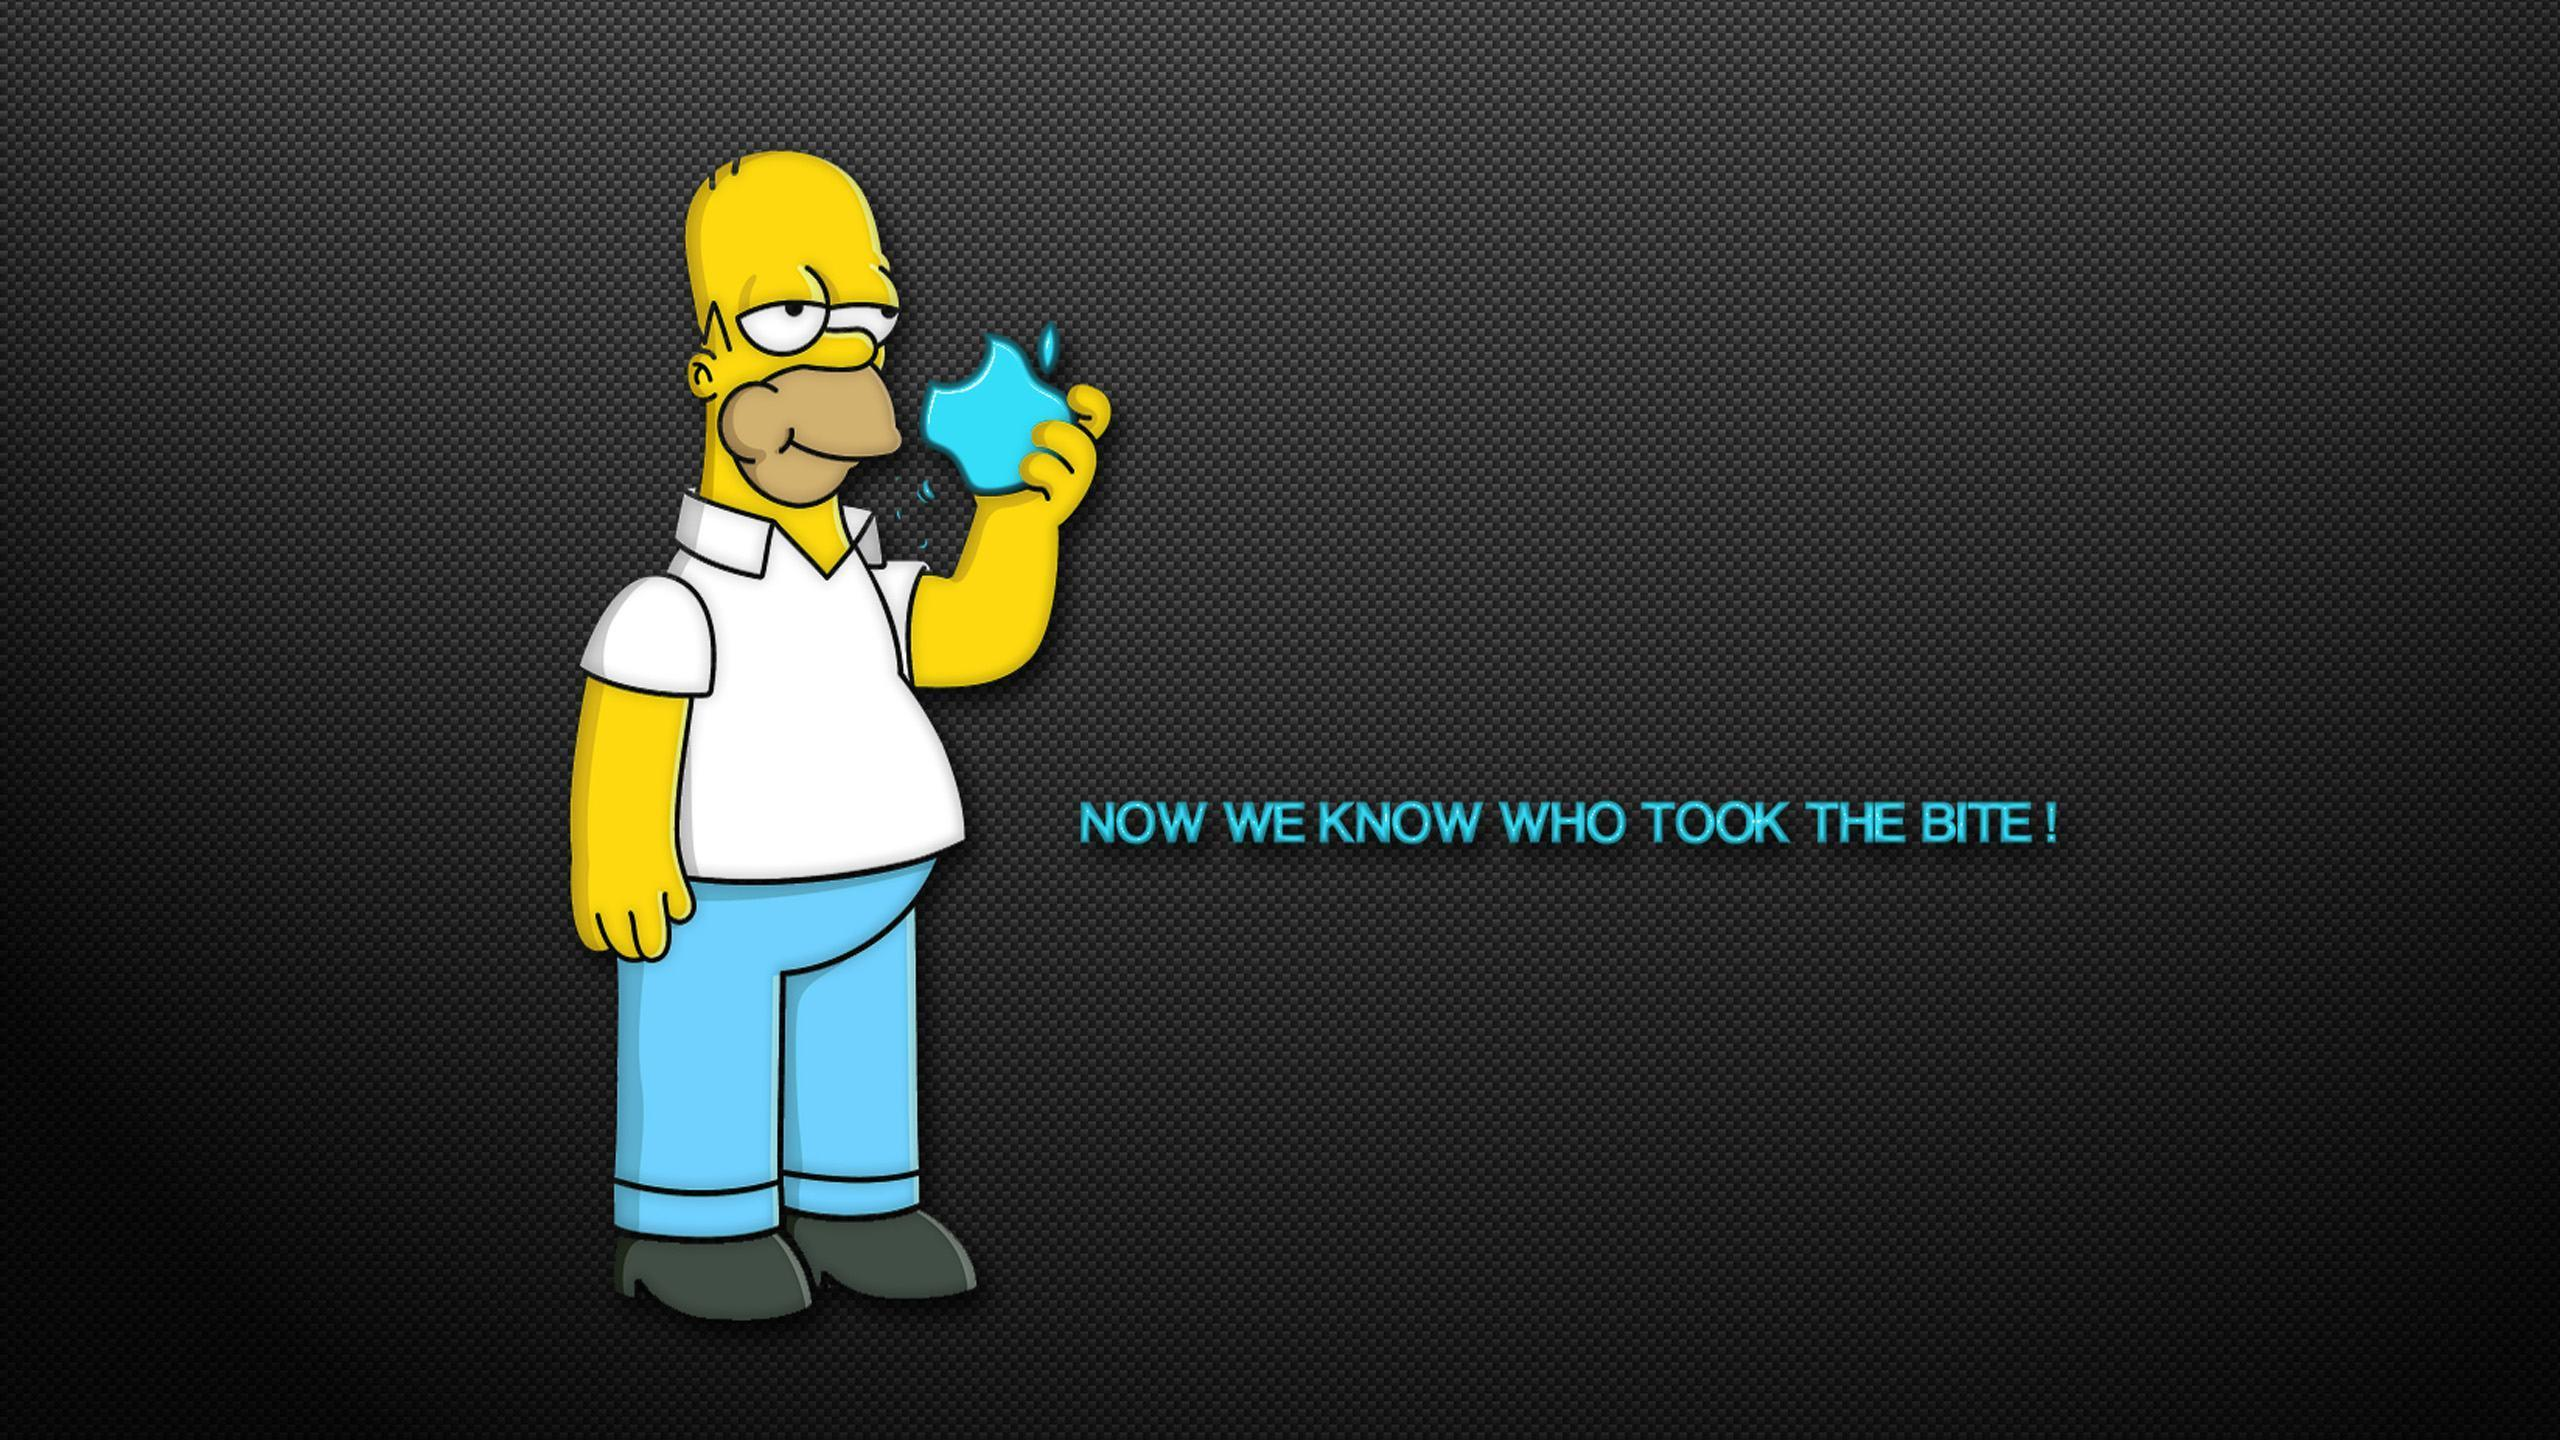 Funny HD Wallpapers For Mac   Wallpaper Cave mac book air apple simpsons funny 2560x1440px Wallpapers HD Wallp